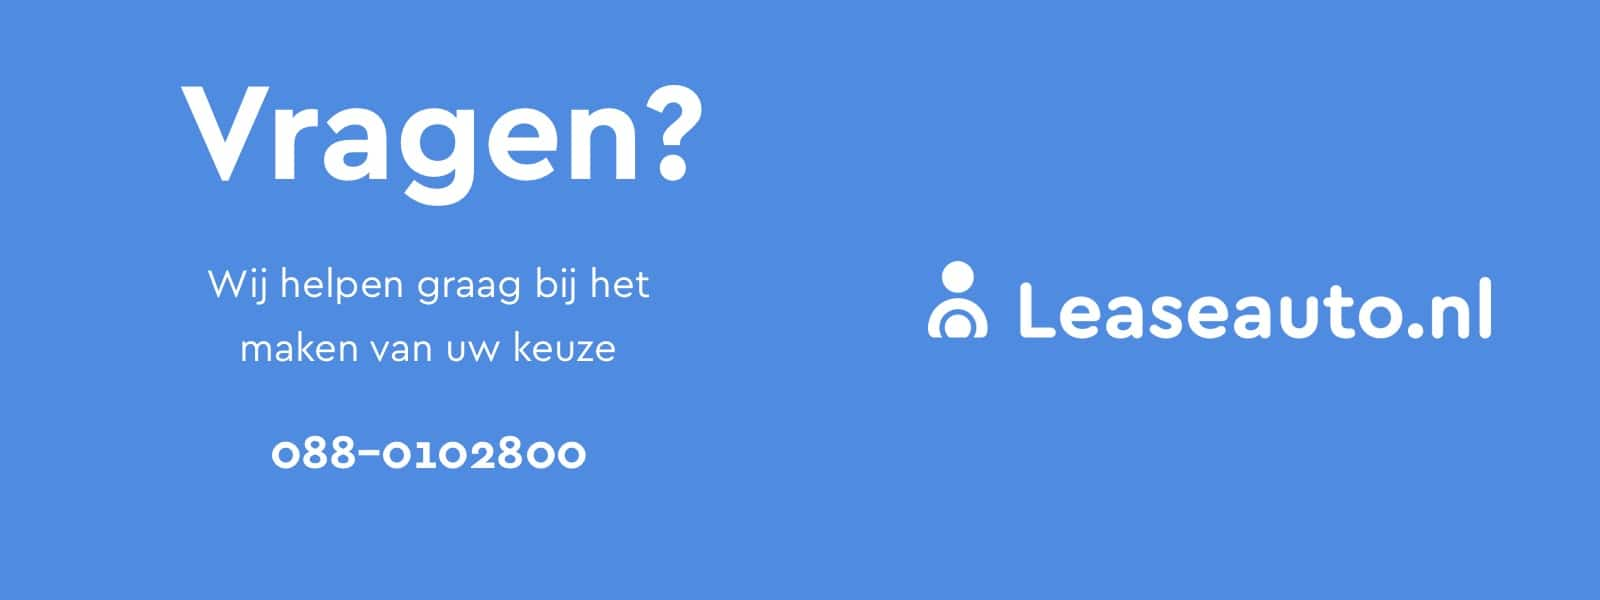 Contact met Leaseauto.nl